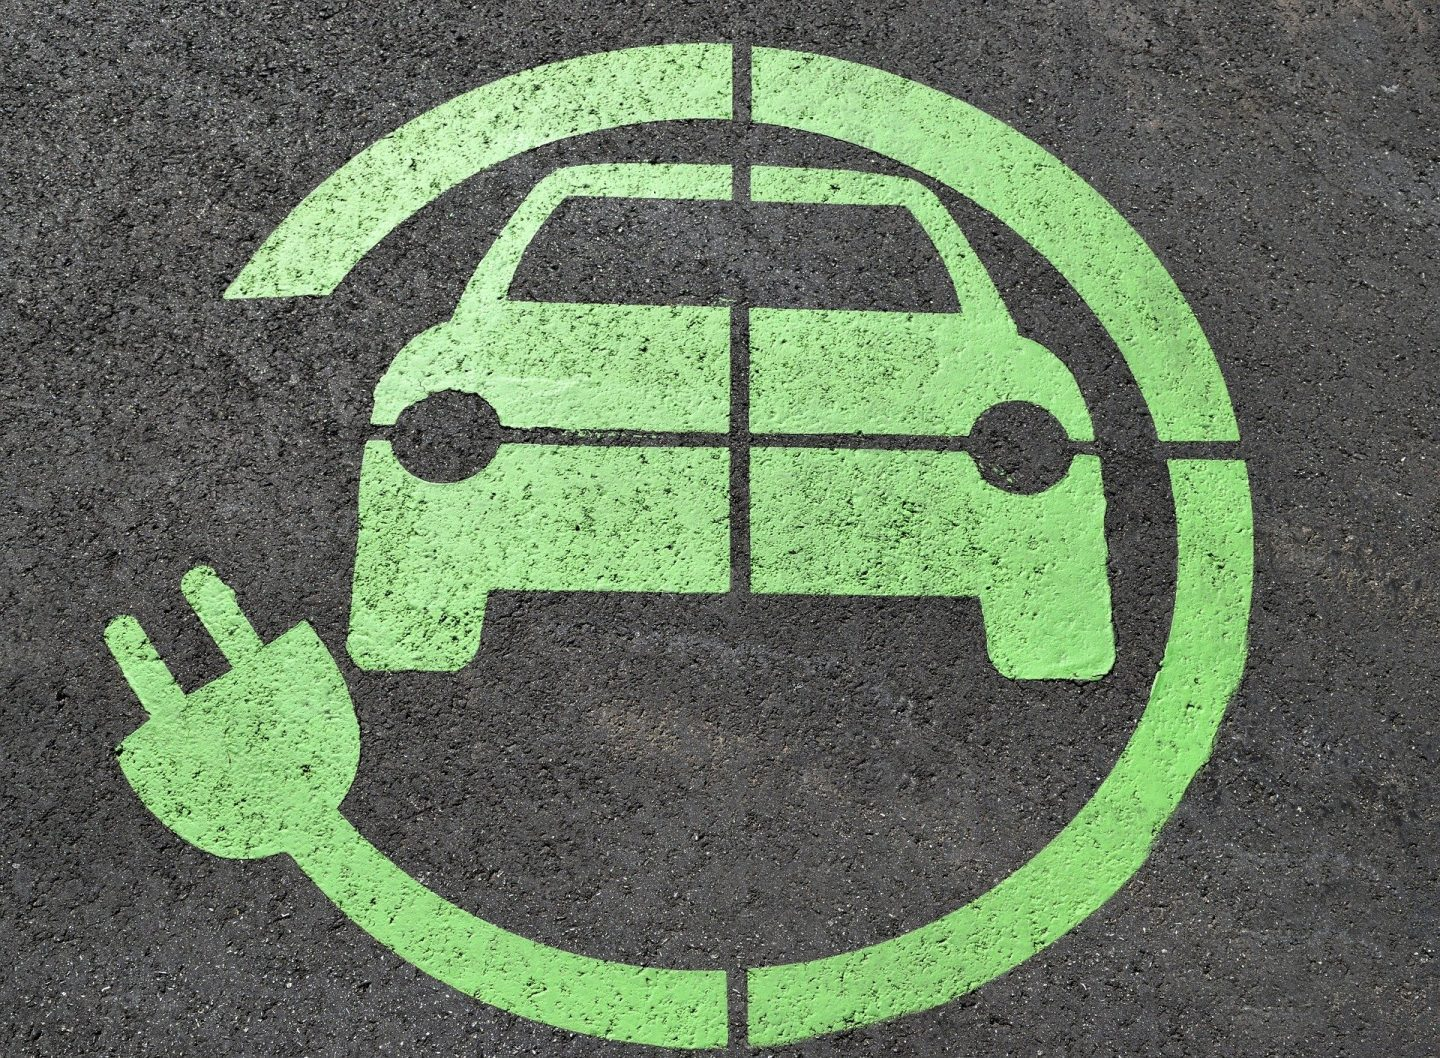 An electric car charging symbol in green